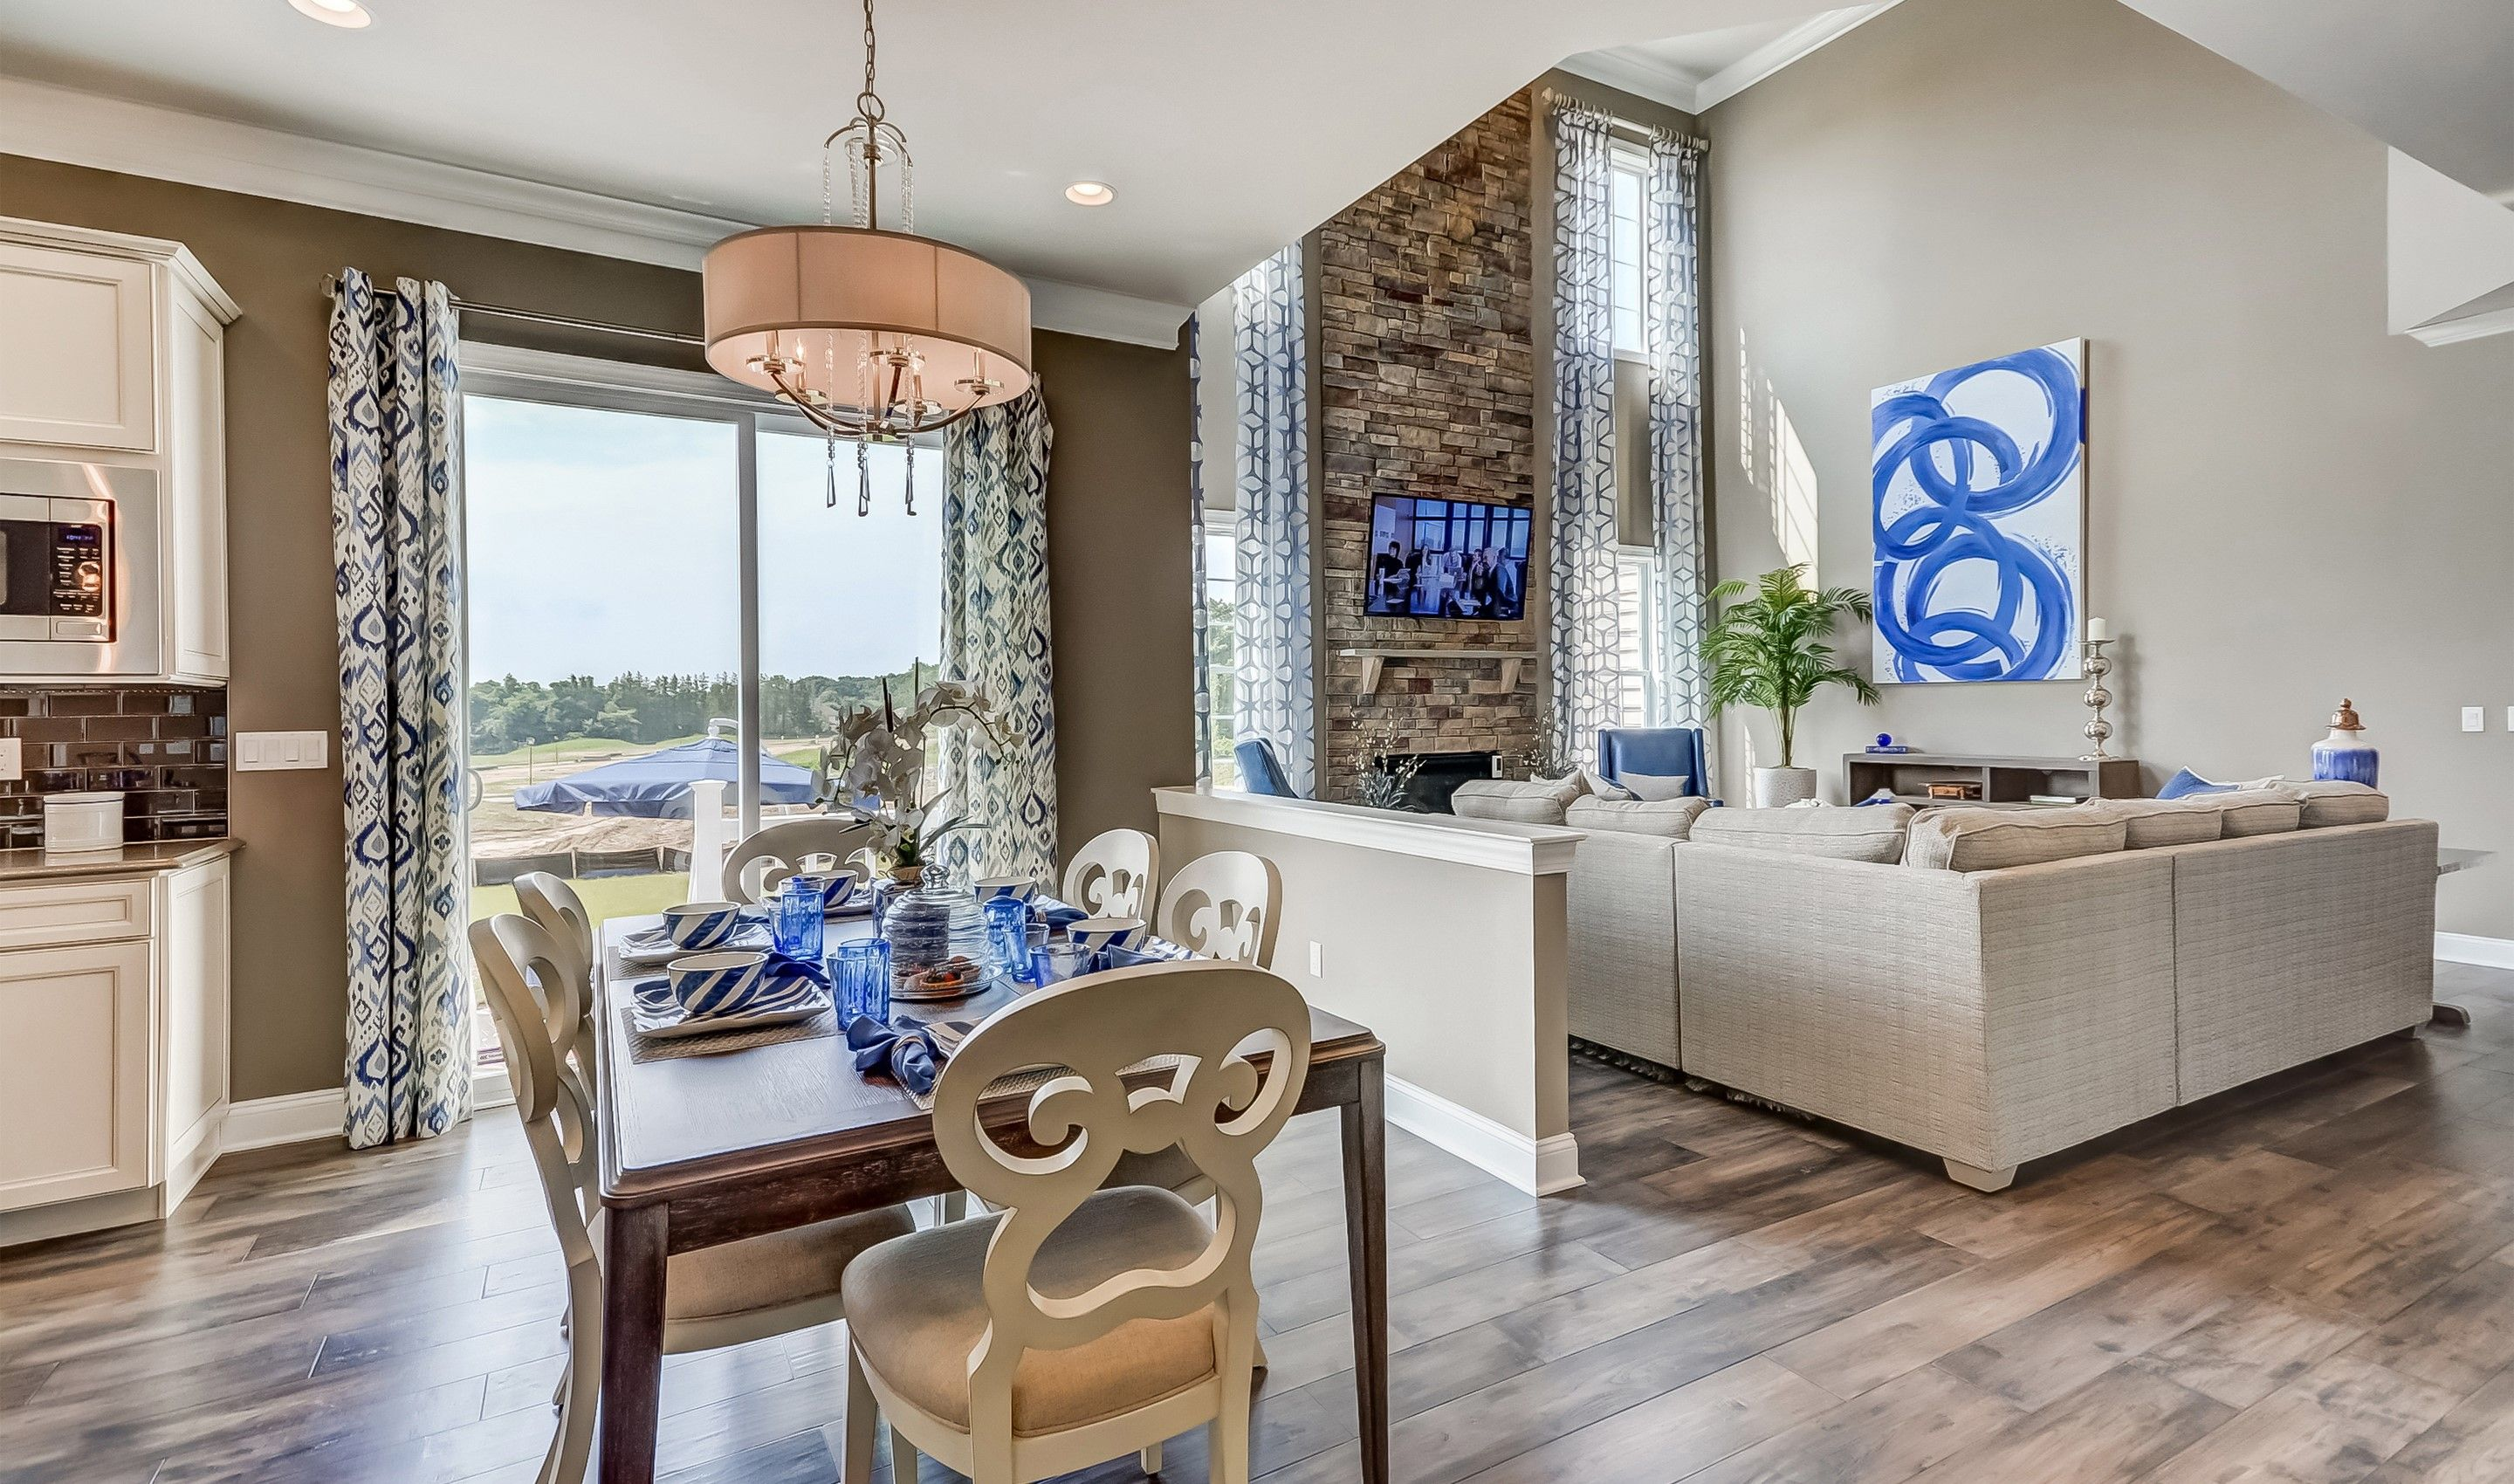 Single Family for Active at Boulder Ii 2 Mclellan Court, Homesite 1 East Brunswick Township, New Jersey 08816 United States